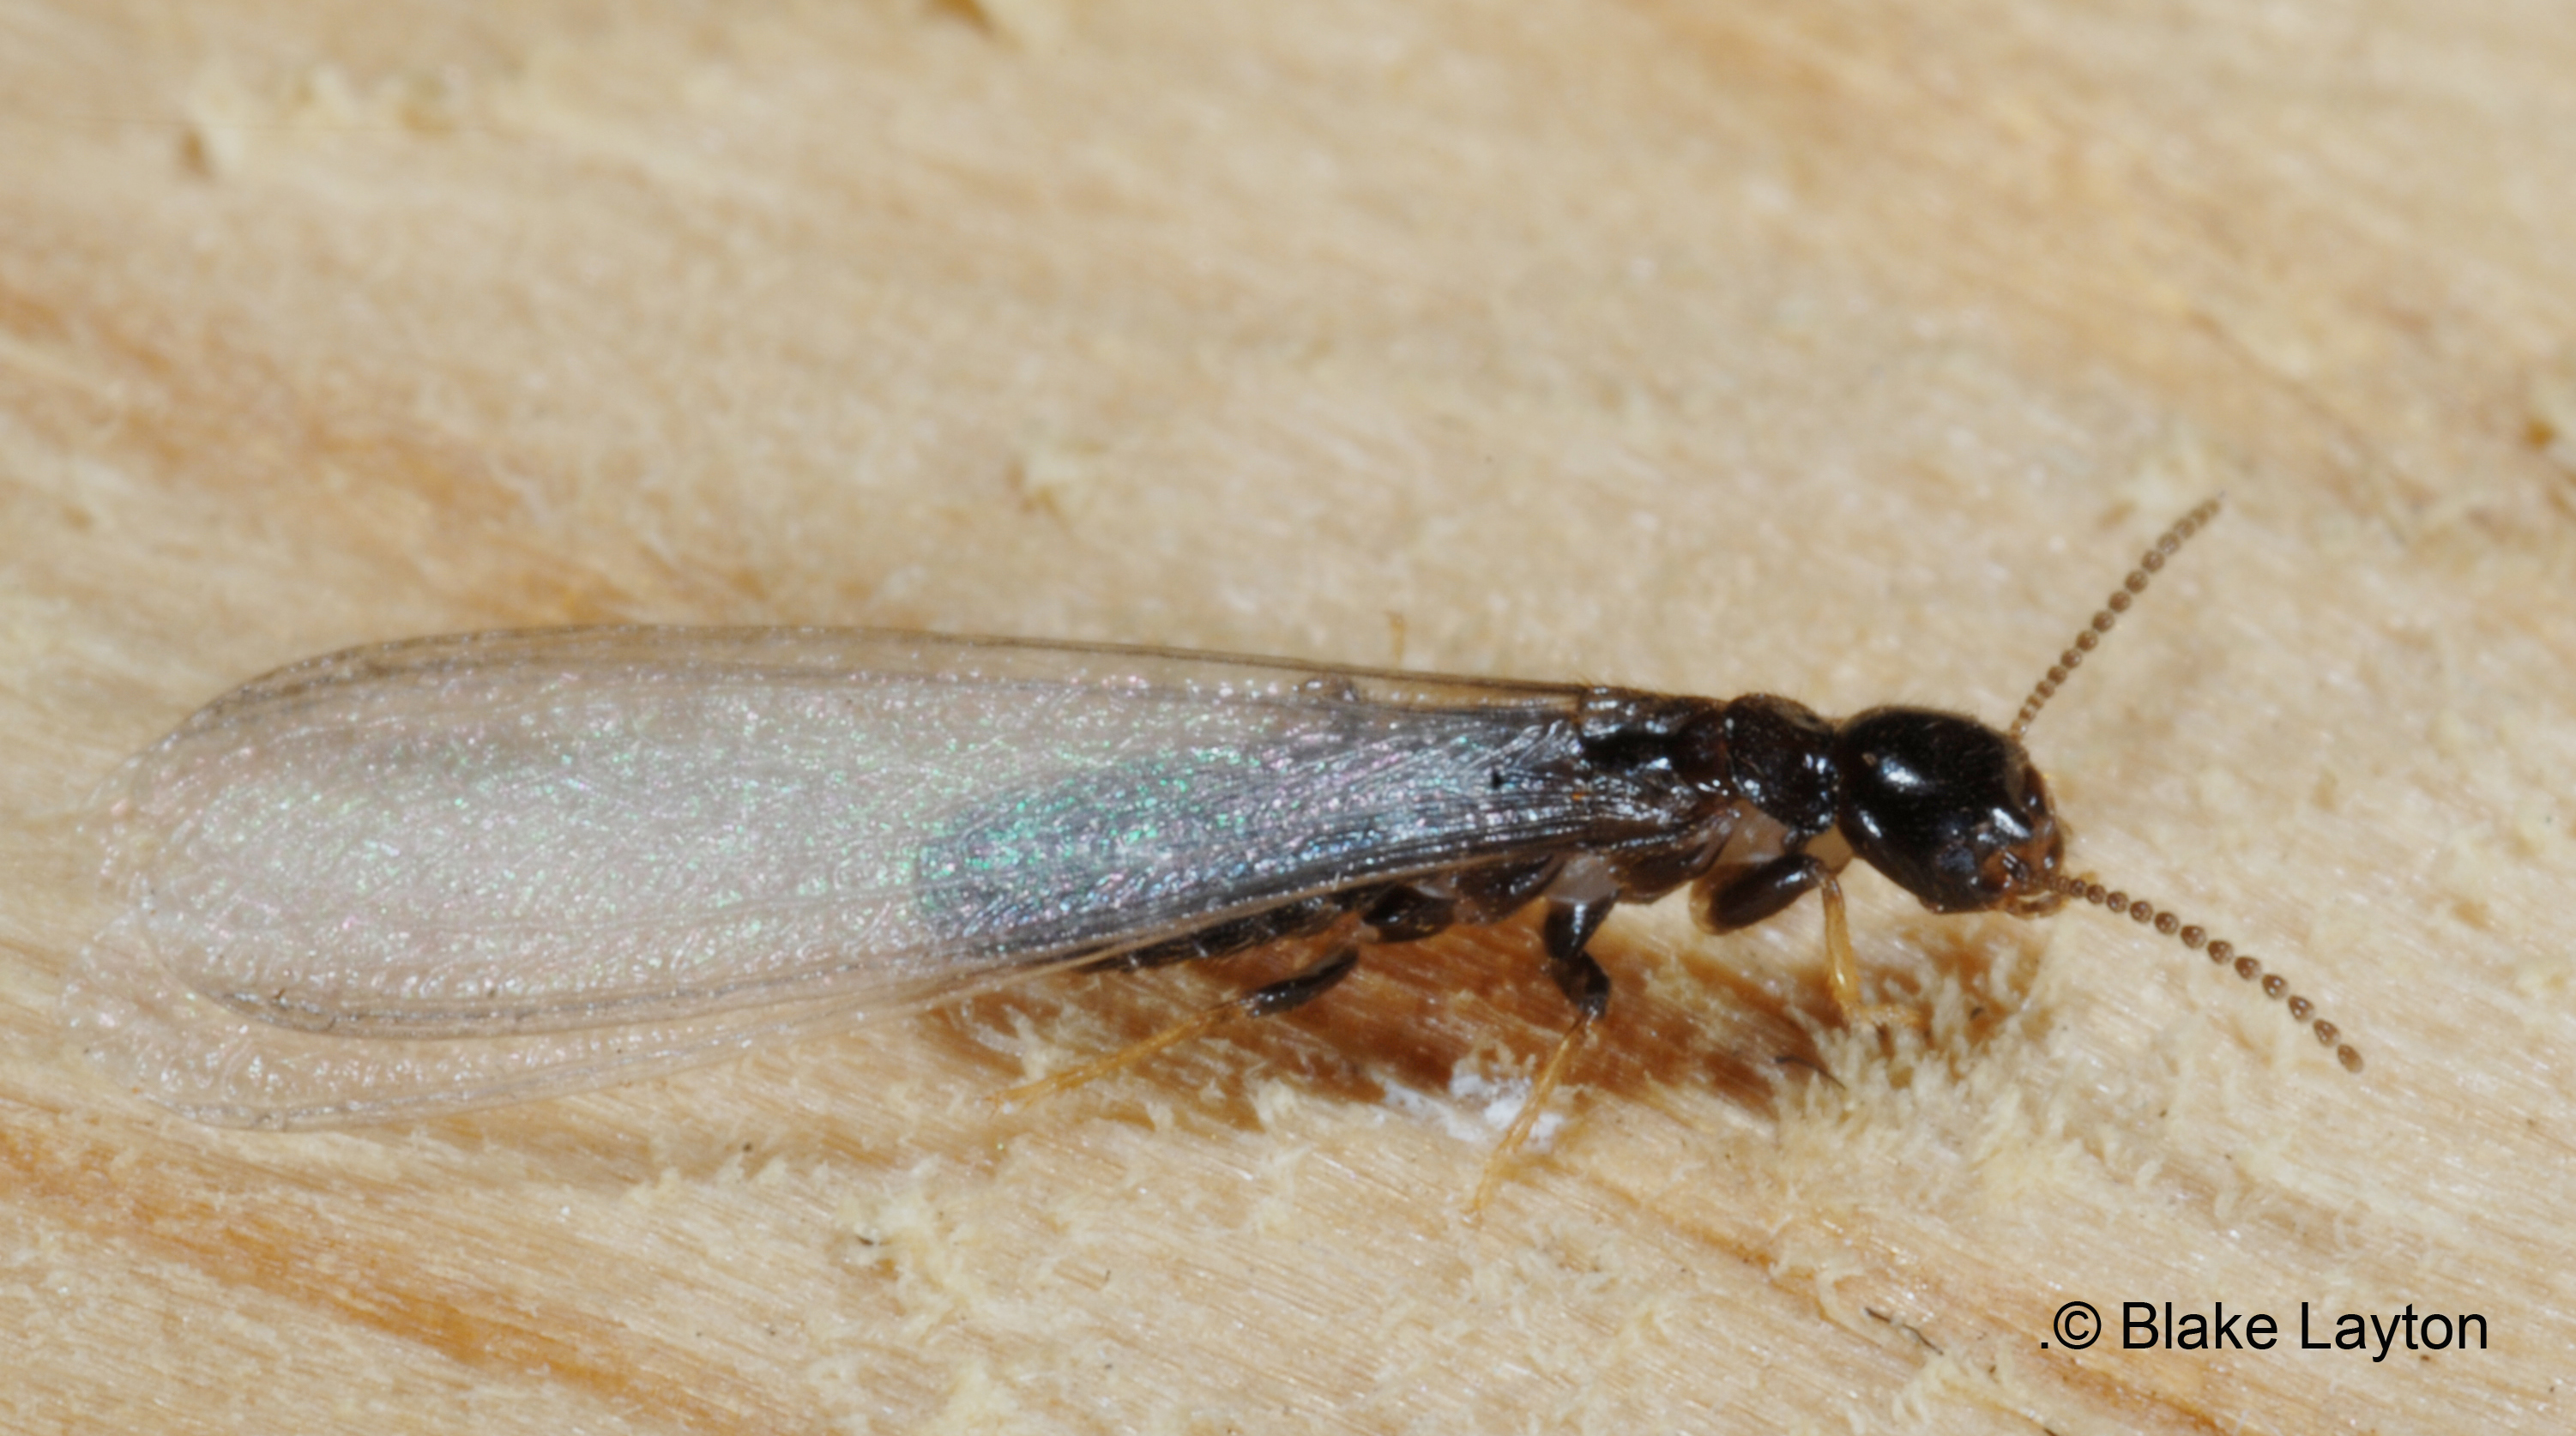 This is an Eastern subterranean termite swarmer. Note the long wings, with both pairs of equal length, and the straight, beadlike antennae.